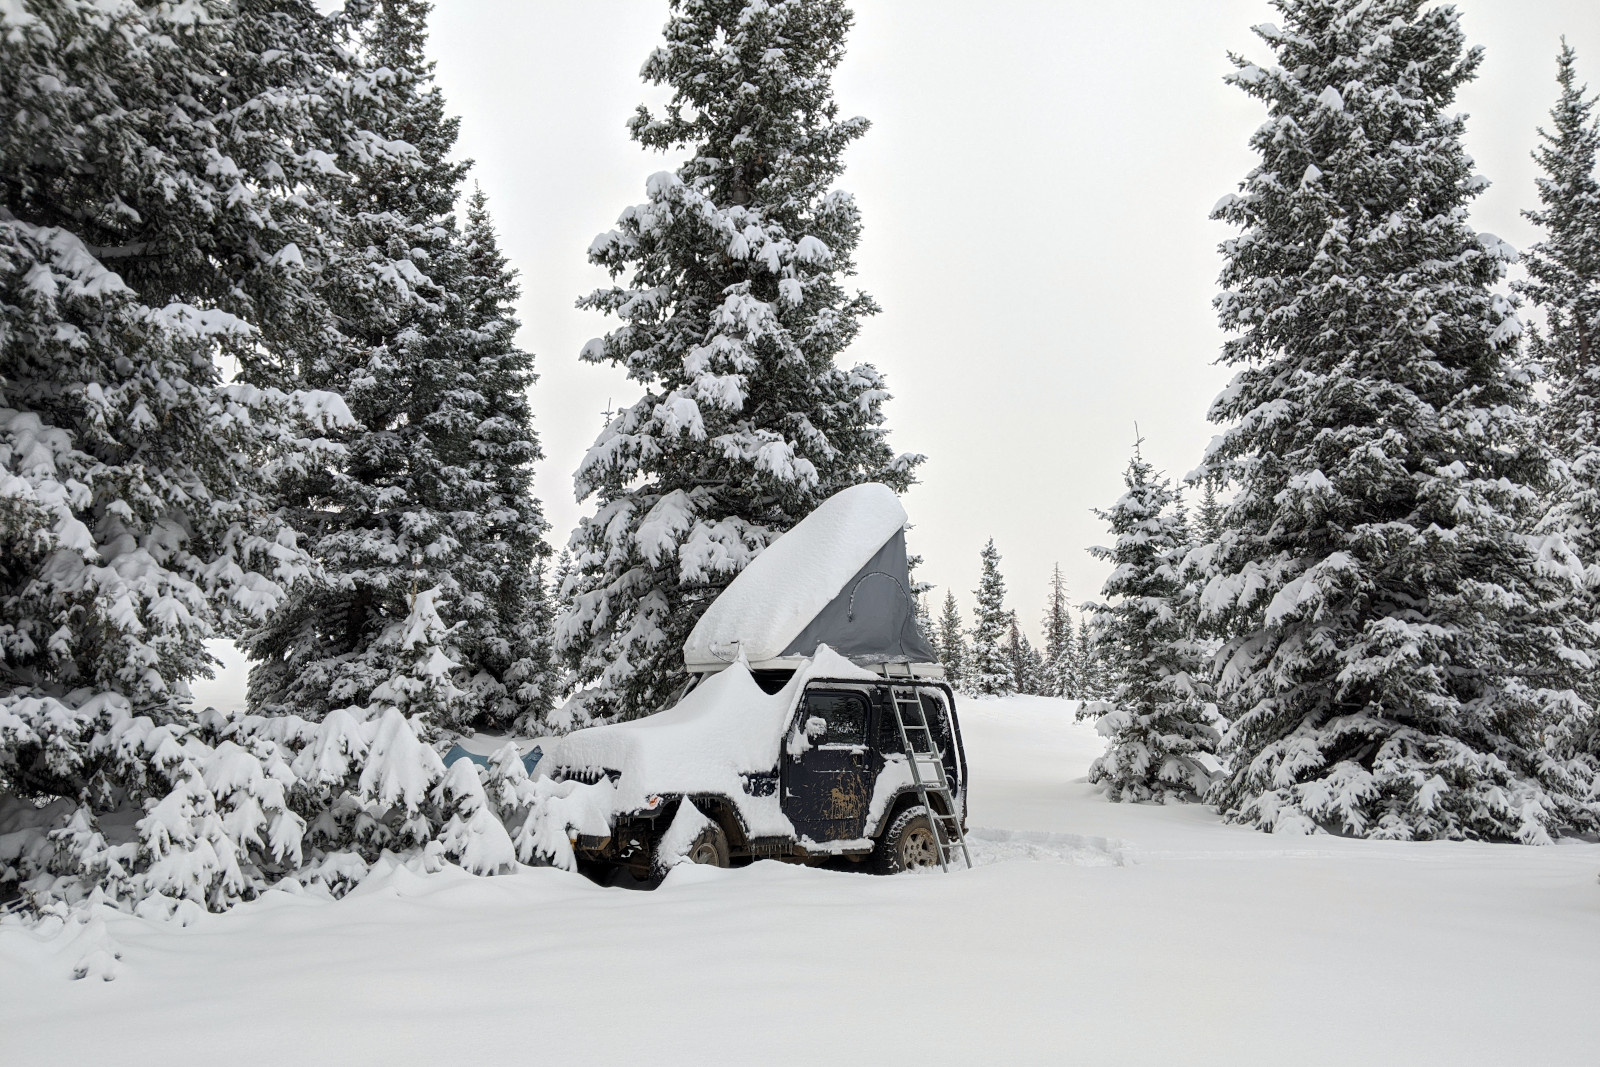 At least one foot of snow had fallen overnight, covering La Jeep and everything around it